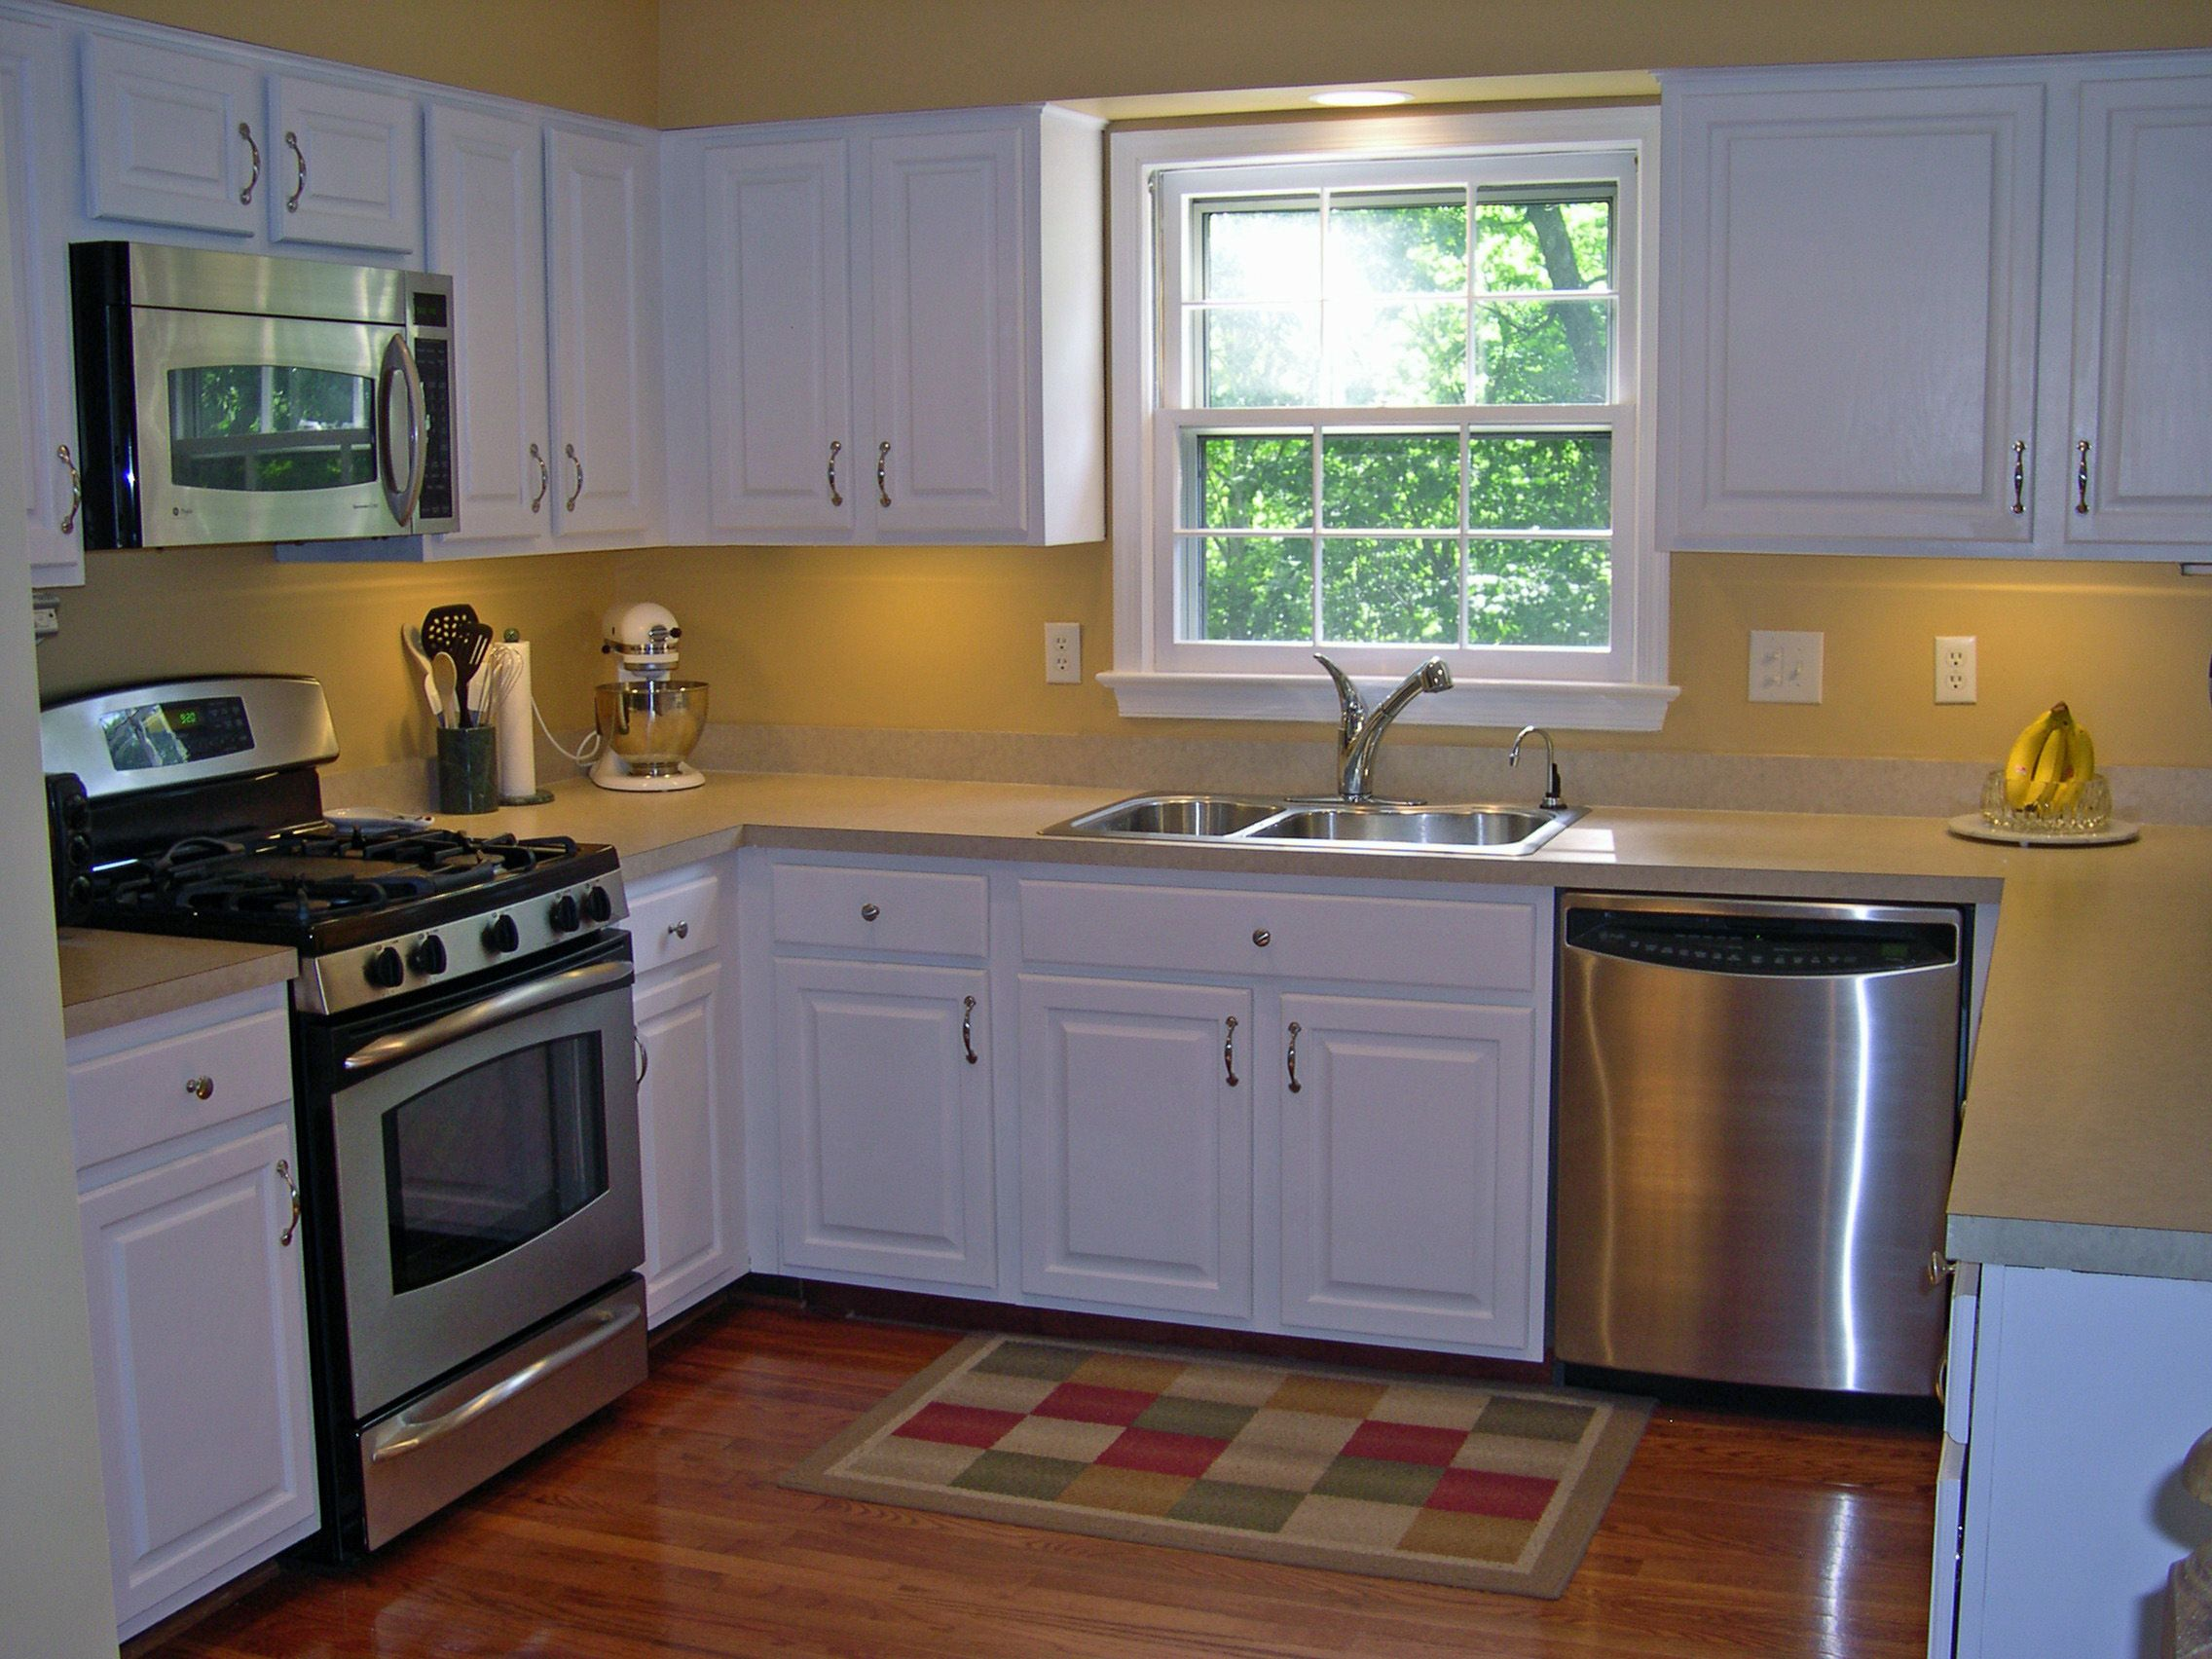 Small Kitchen Remodel Ideas small kitchen remodeling ideas | small kitchen remodel ideas